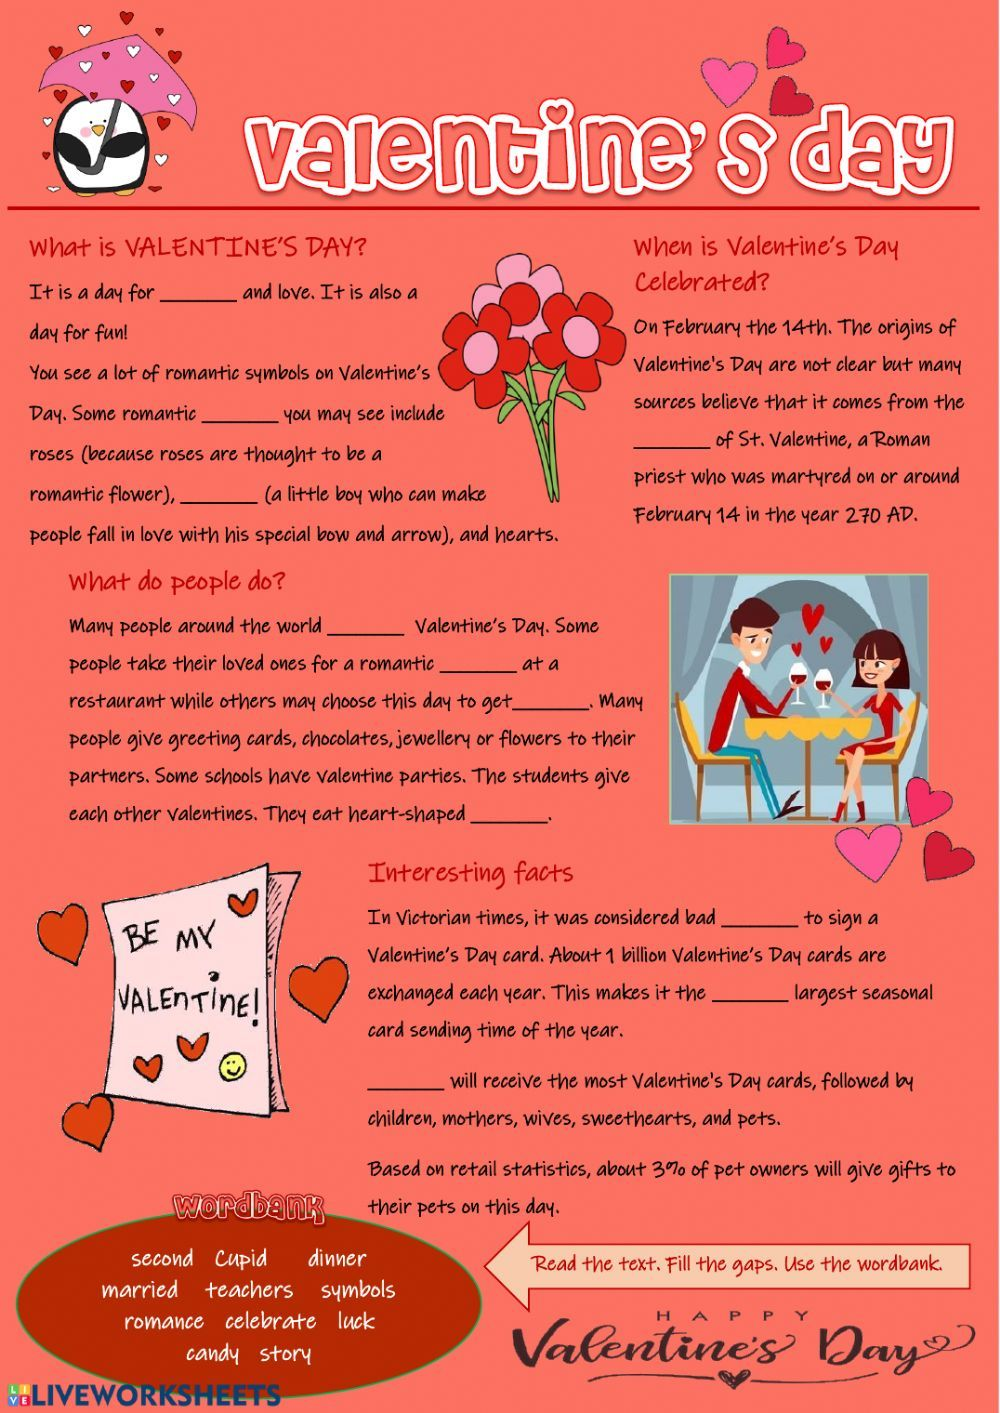 St Valentine S Day Interactive And Downloadable Worksheet You Can Do The Exercises Online Or Down Valentine Worksheets Christmas Worksheets Valentine Reading [ 1413 x 1000 Pixel ]